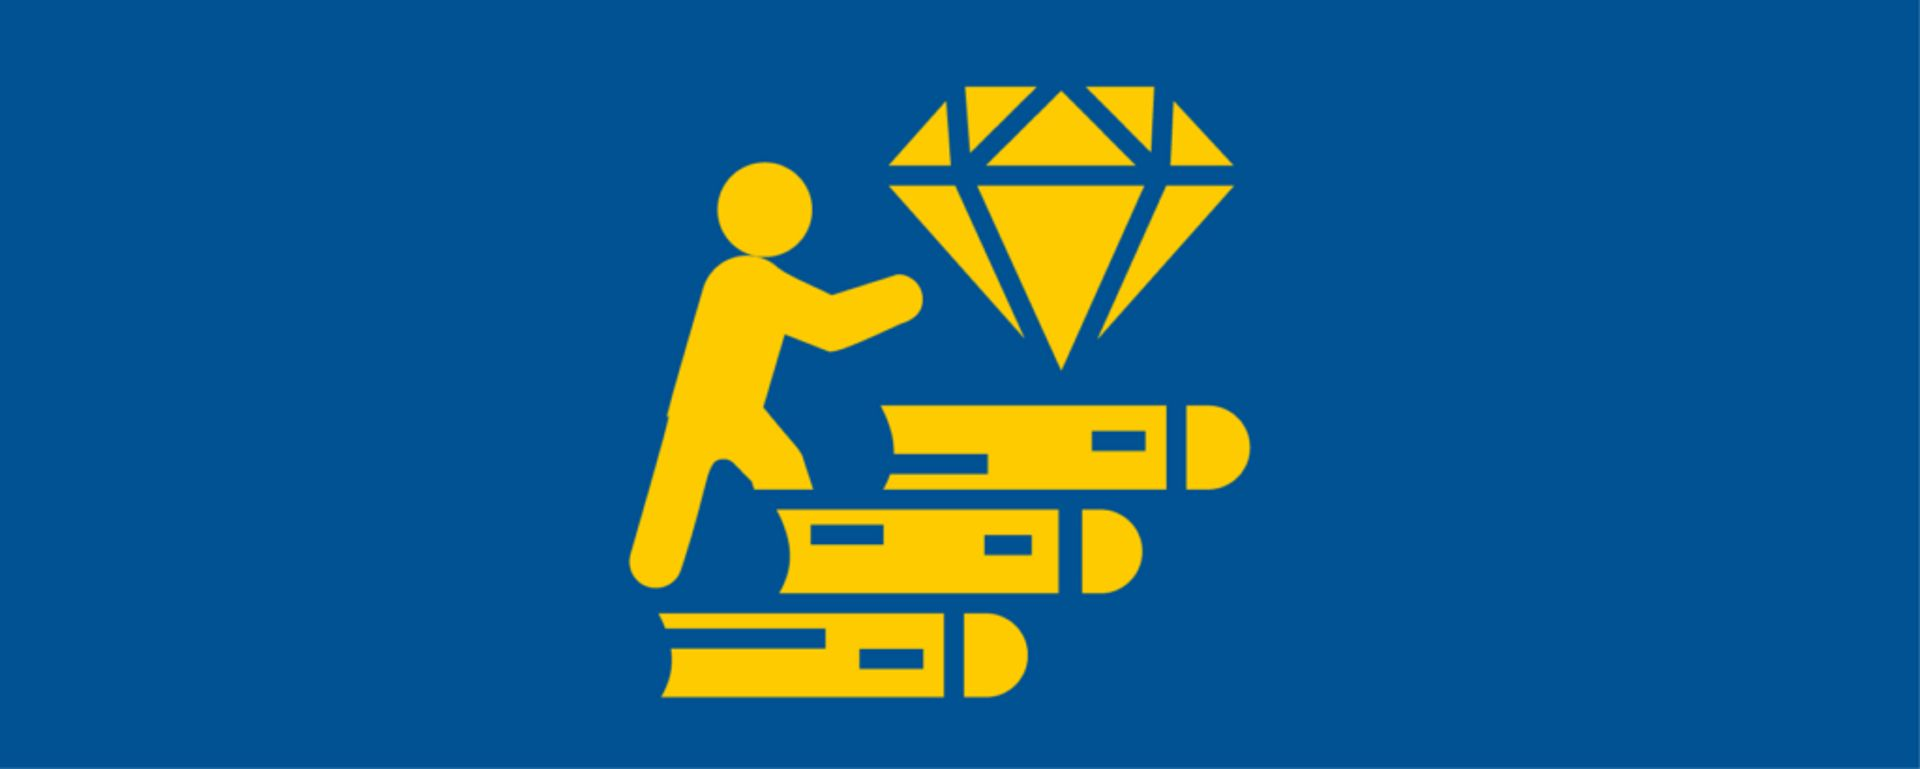 Illustration of a person walking on books towards a diamond symbolizing success